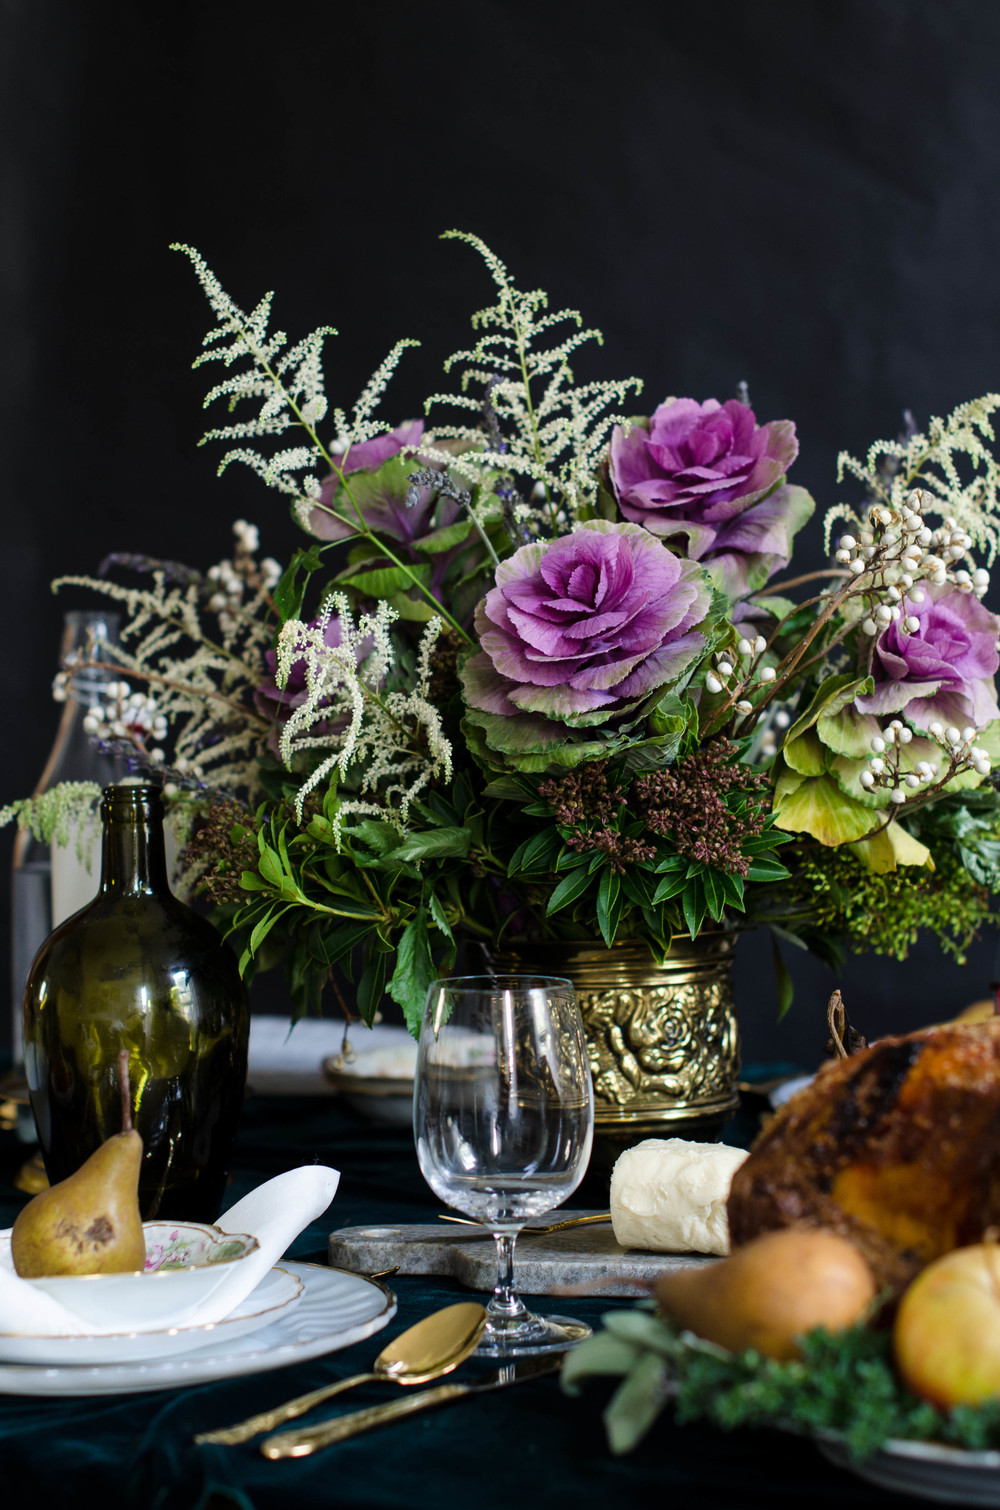 Cabbage rosettes, tallow berries, French lavender and white Astilbe come together to create a rich floral bouquet